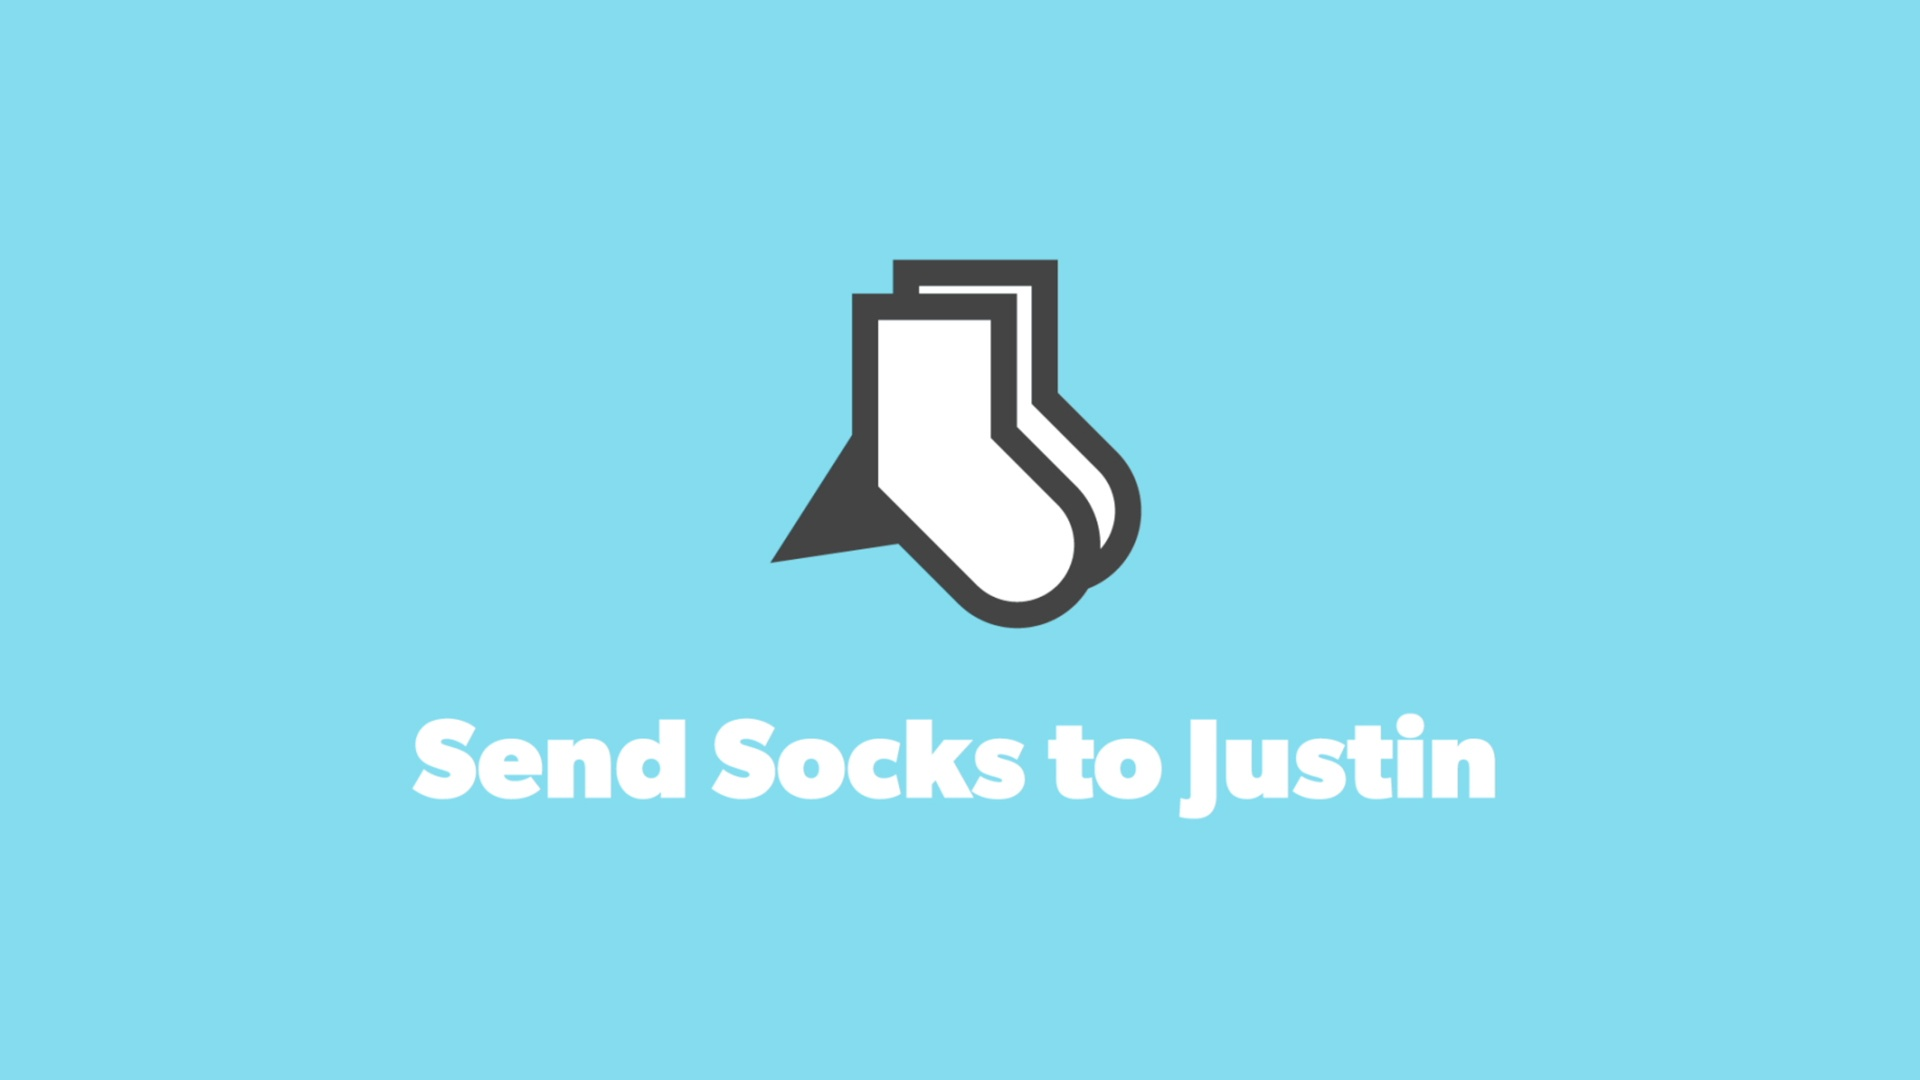 Thumbnail for Send Socks to Justin